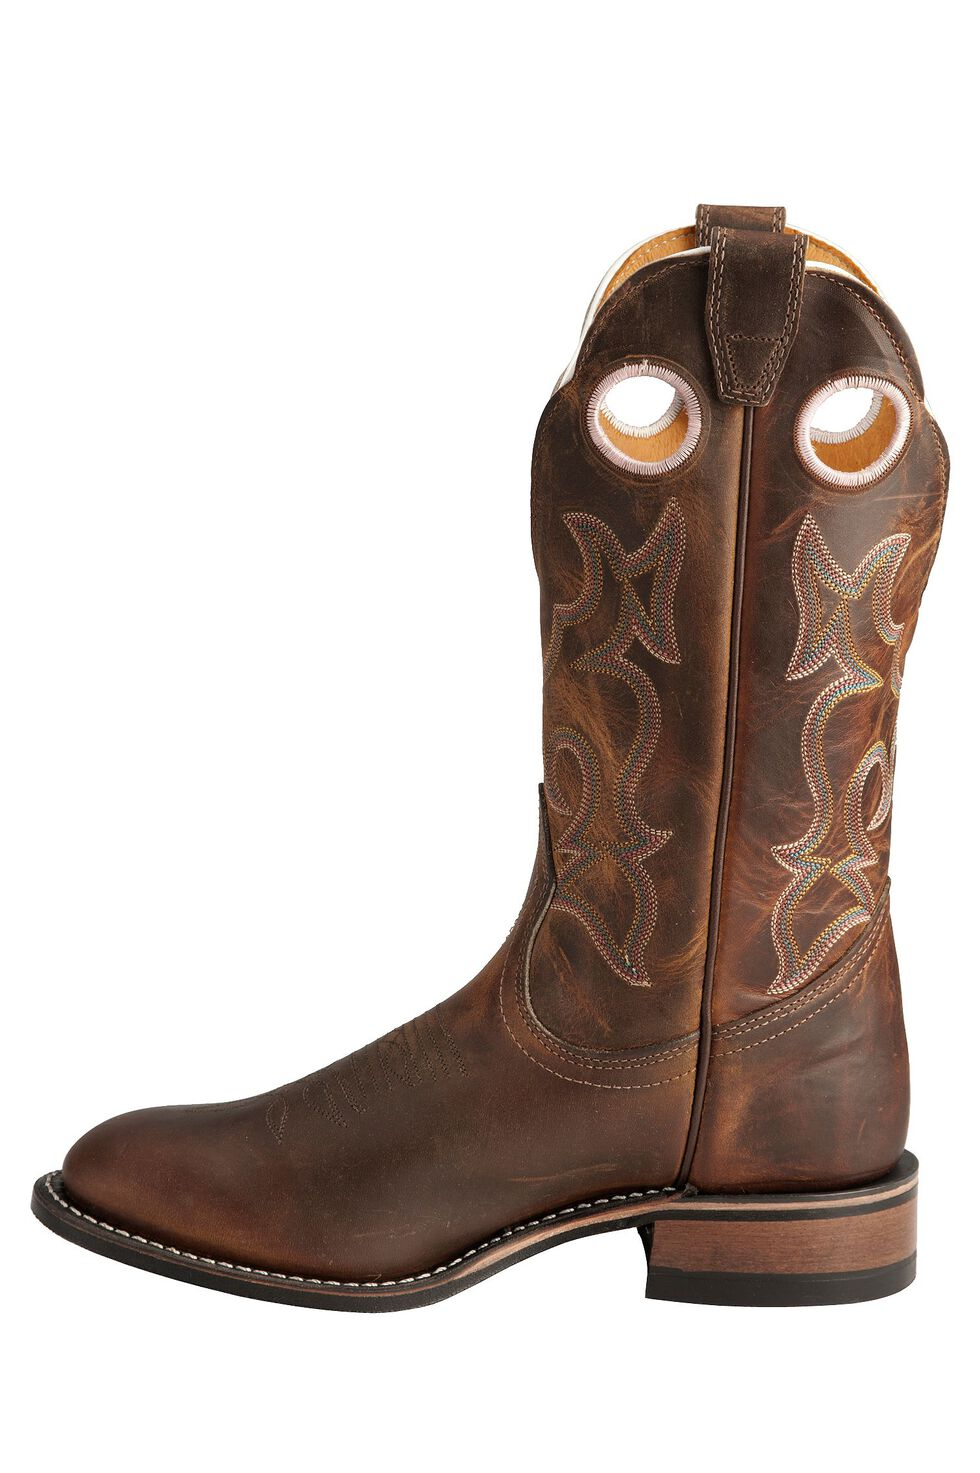 Boulet Tan Spice Rider Cowgirl Boots - Round Toe, Tan, hi-res